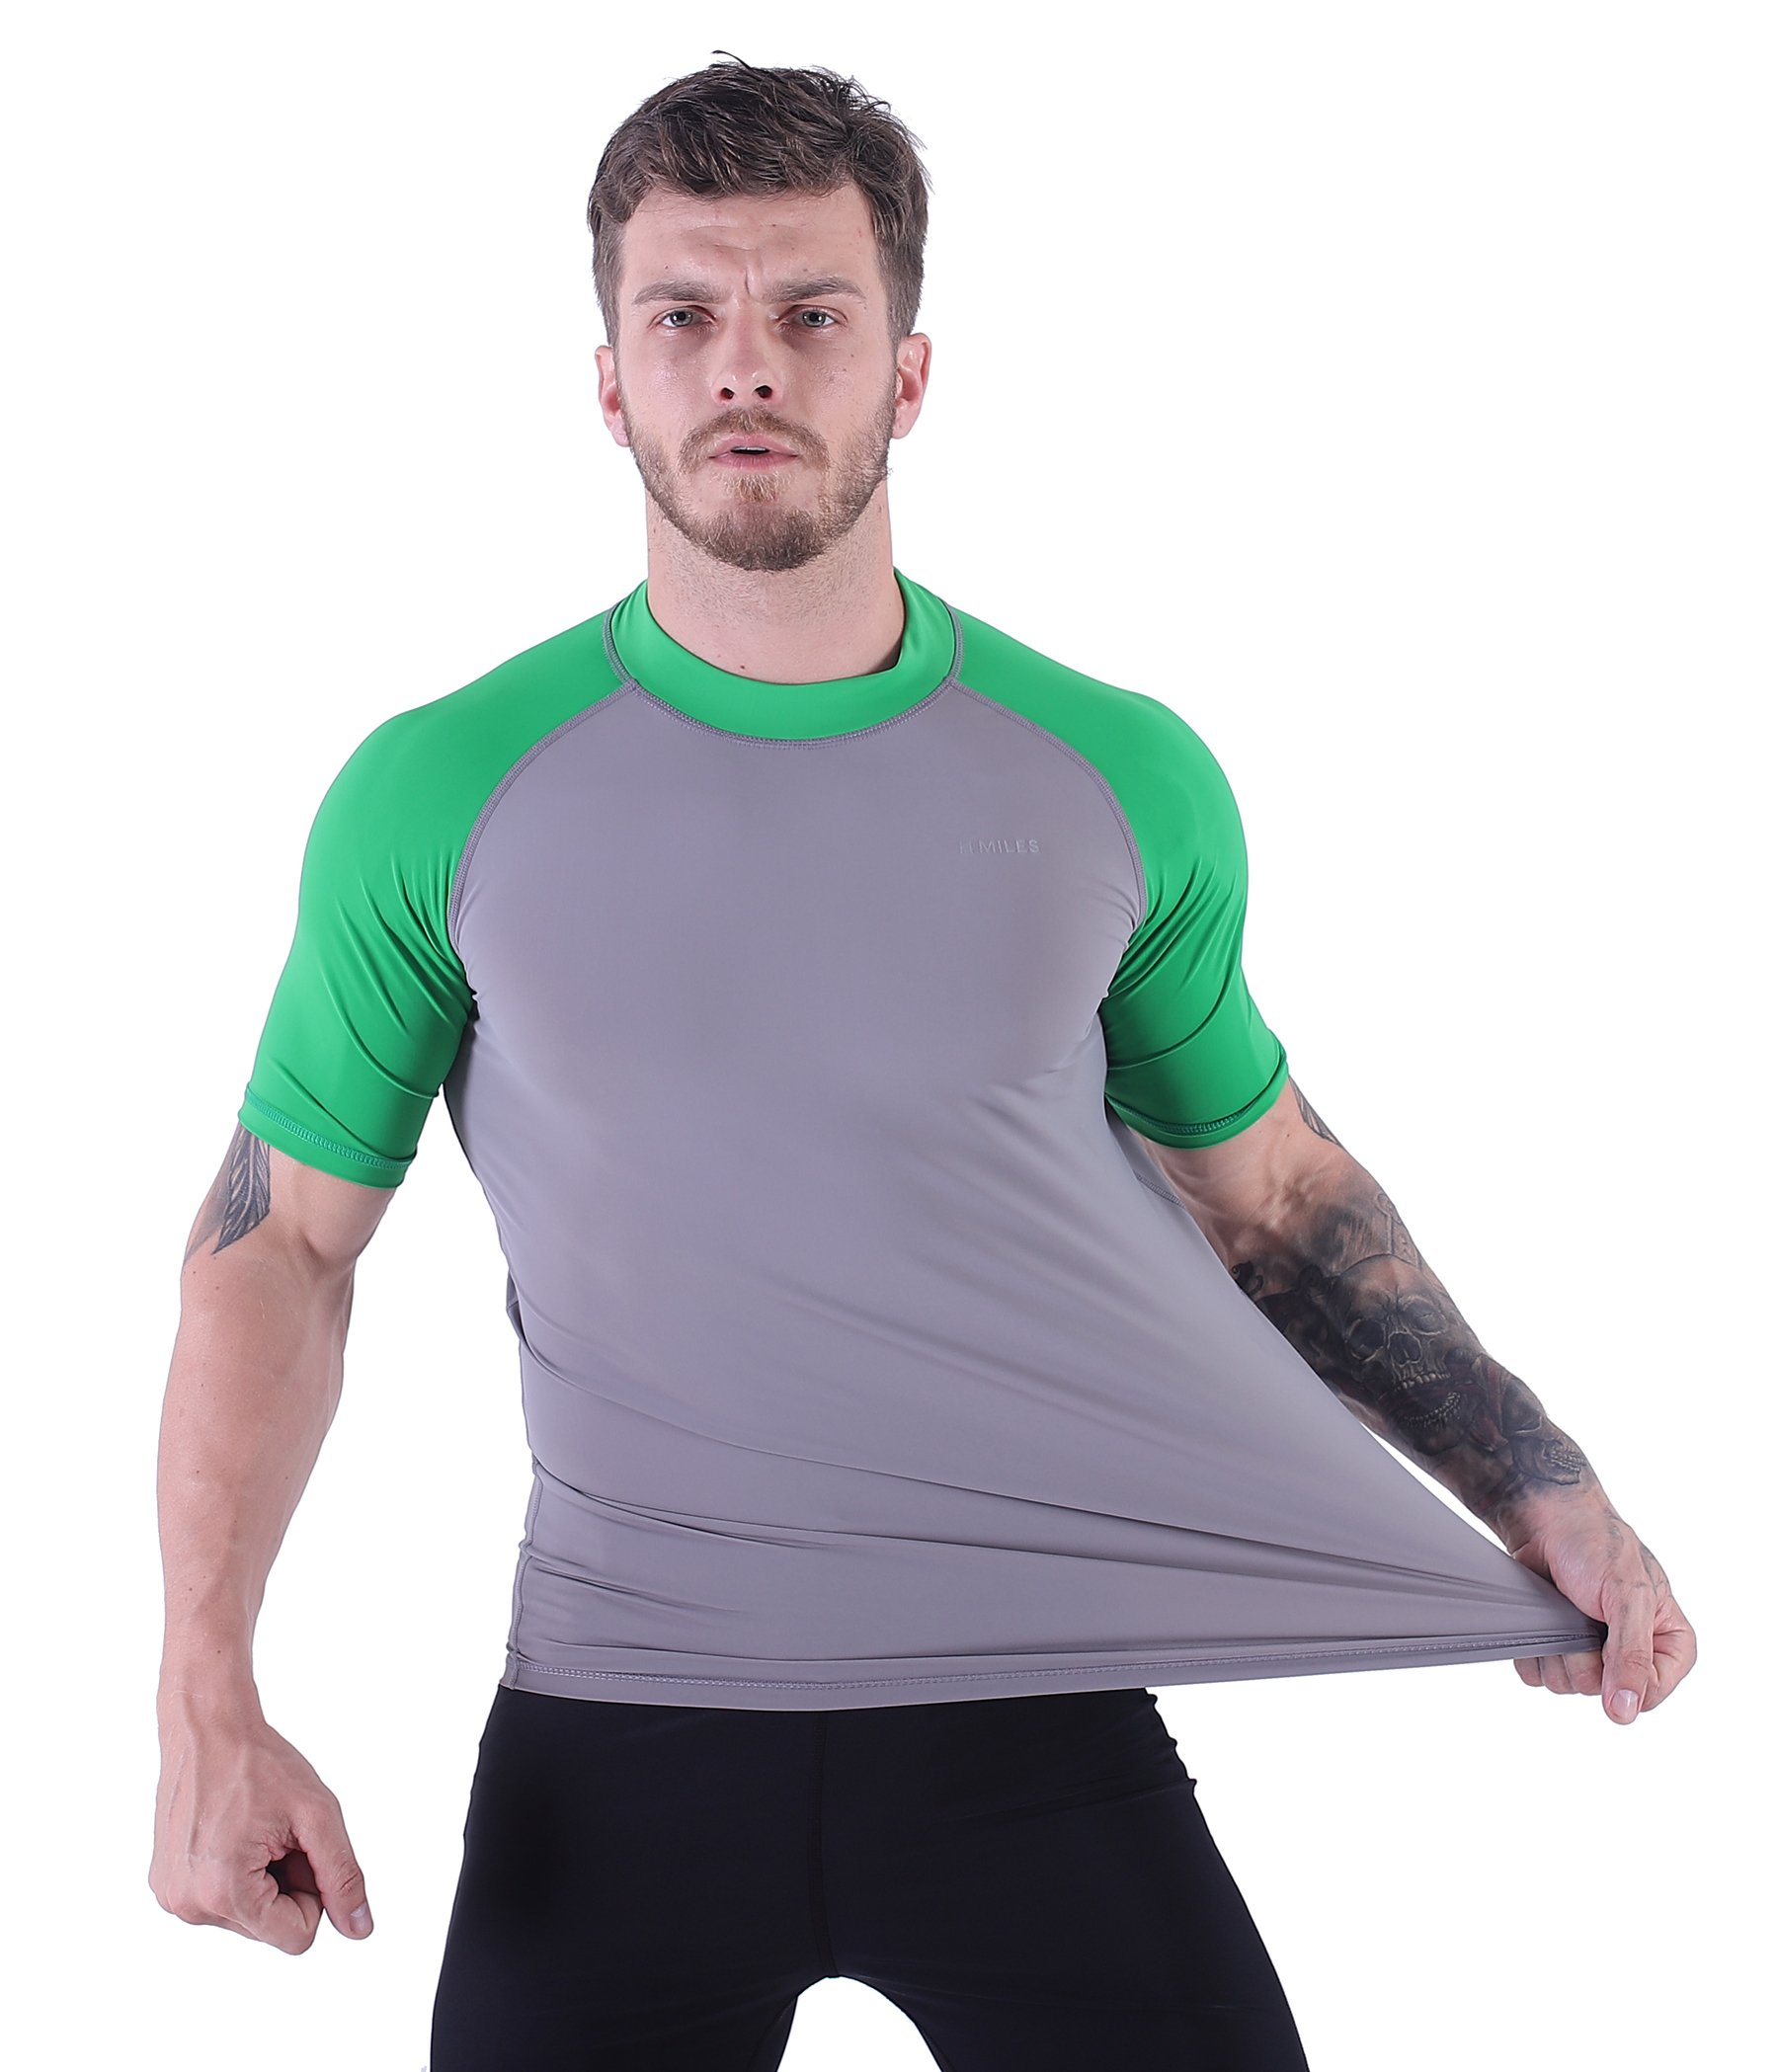 H.MILES Mens UV Protection Rash Guard Swim Shirts Short Sleeve Moisture Wicking Swimming Shirts Workout Swimwear Tops Light Grey/Green-2XL by H.MILES